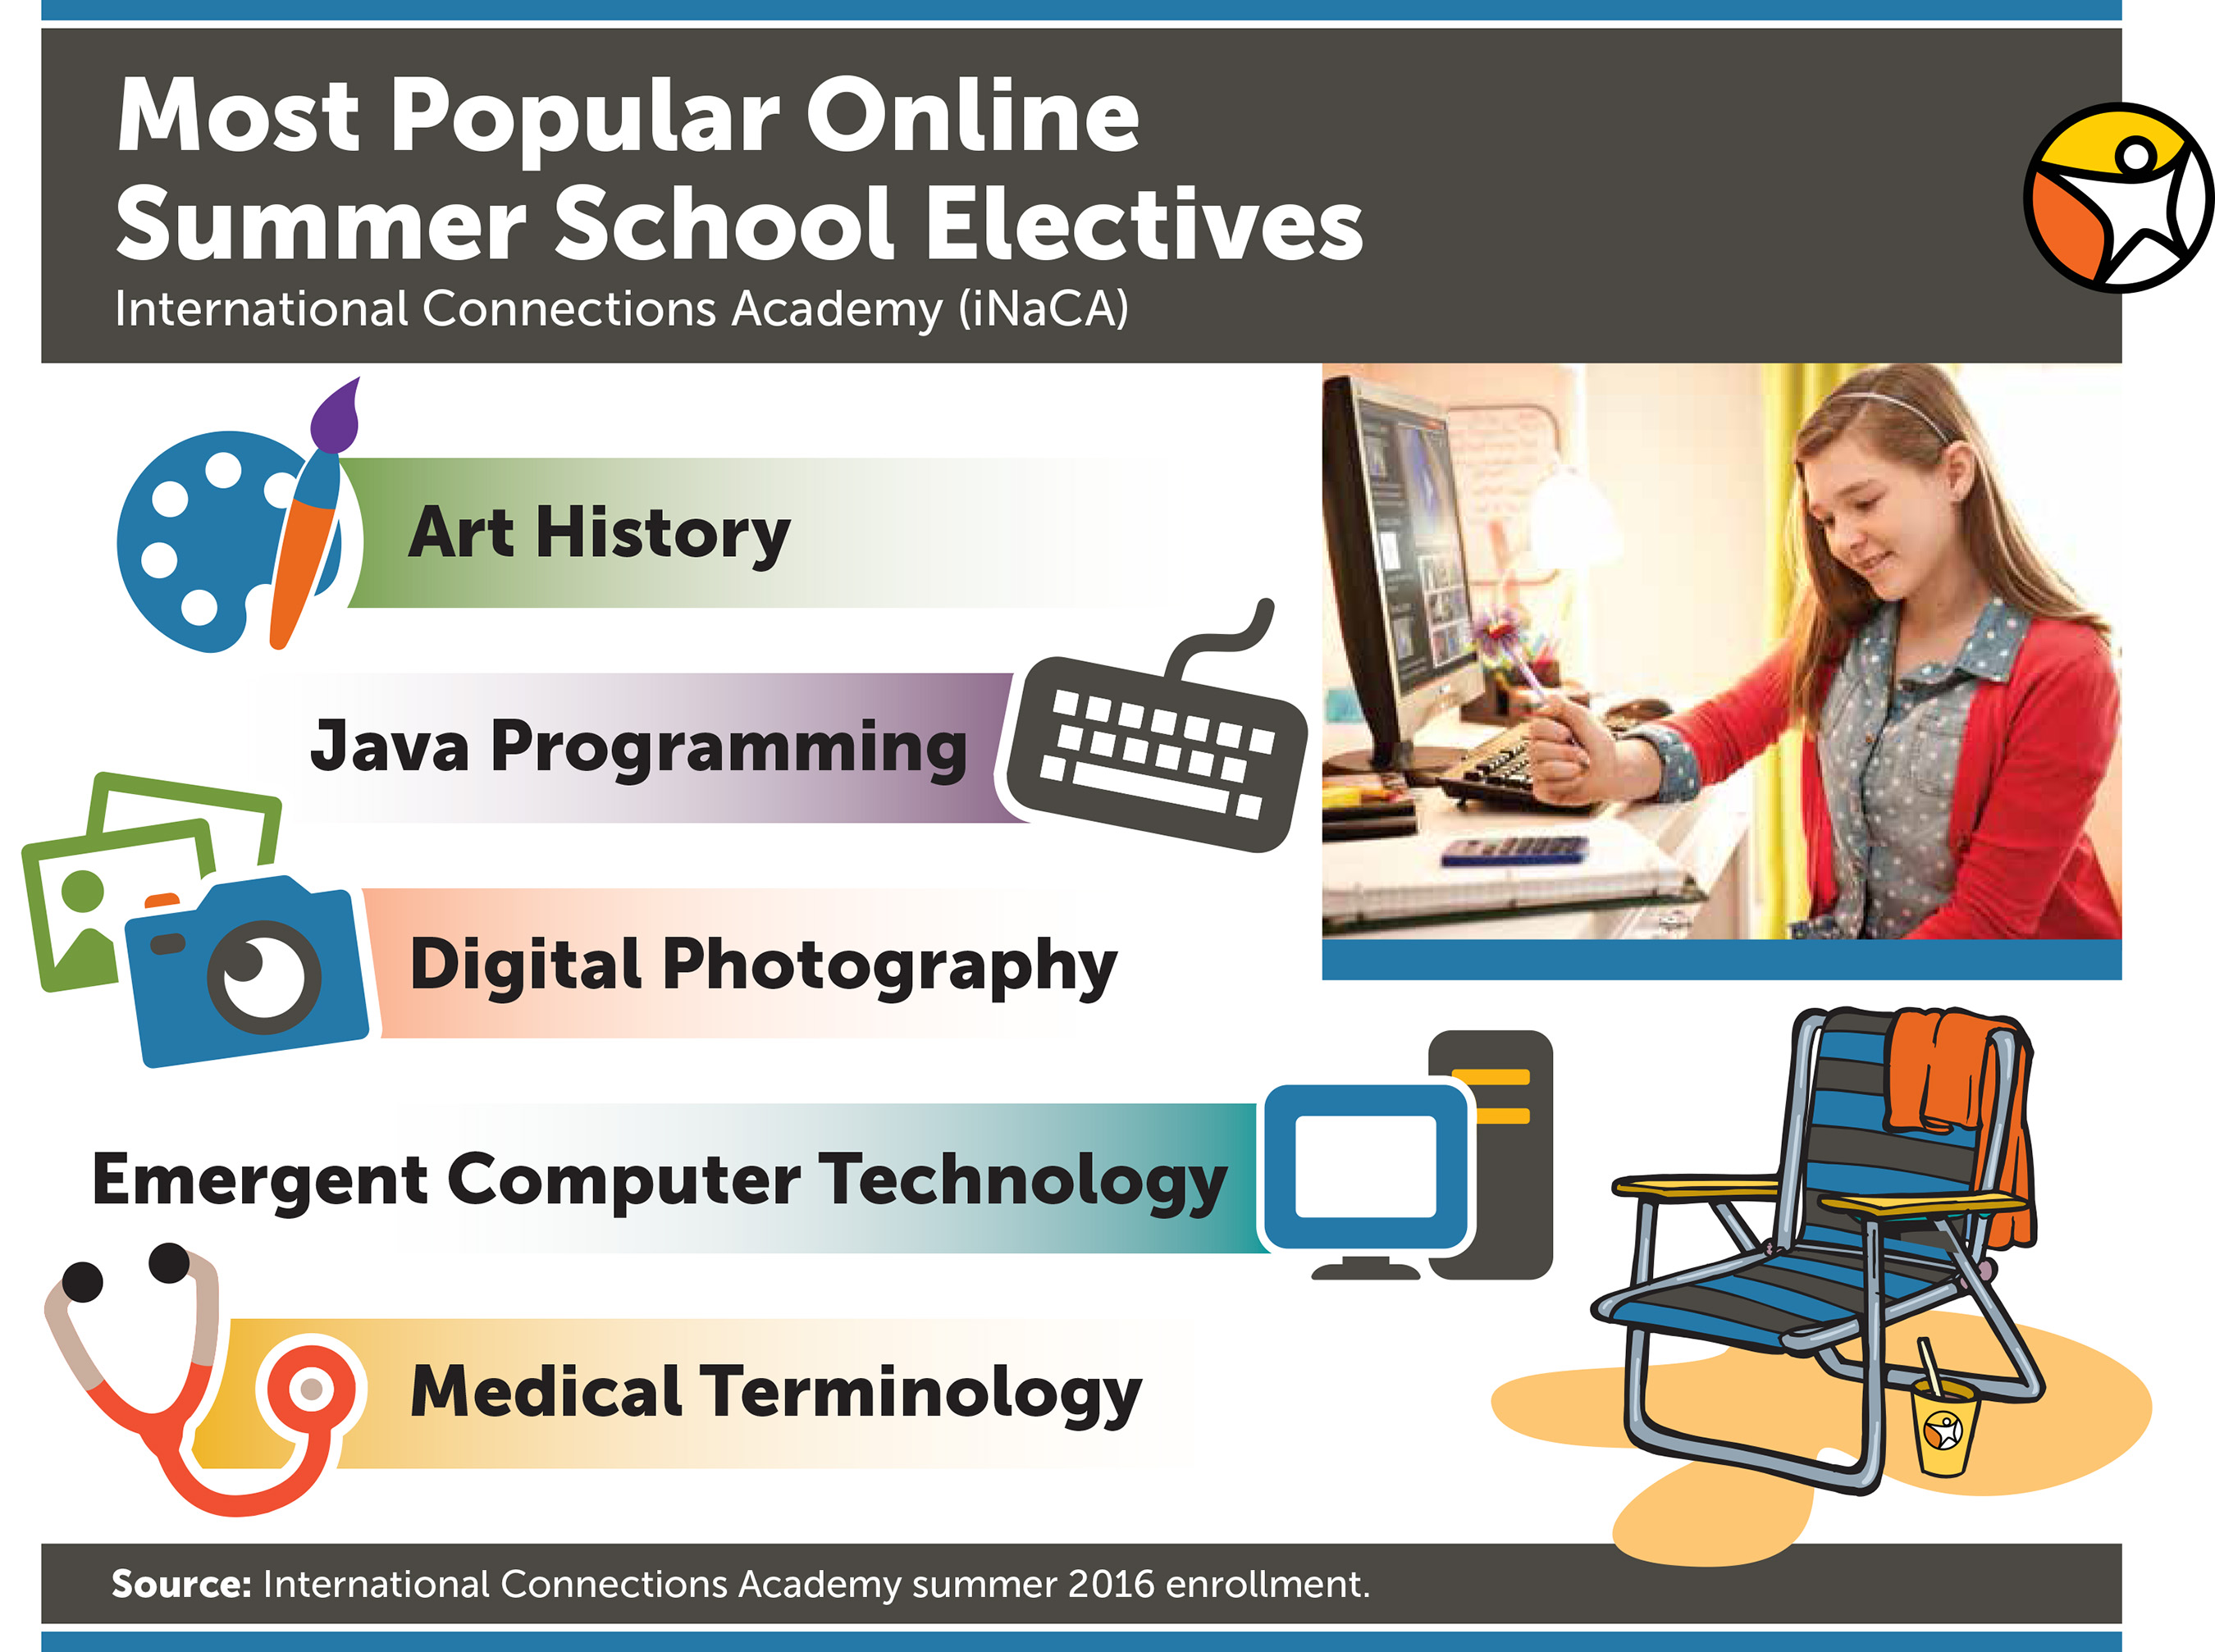 Most Popular Electives